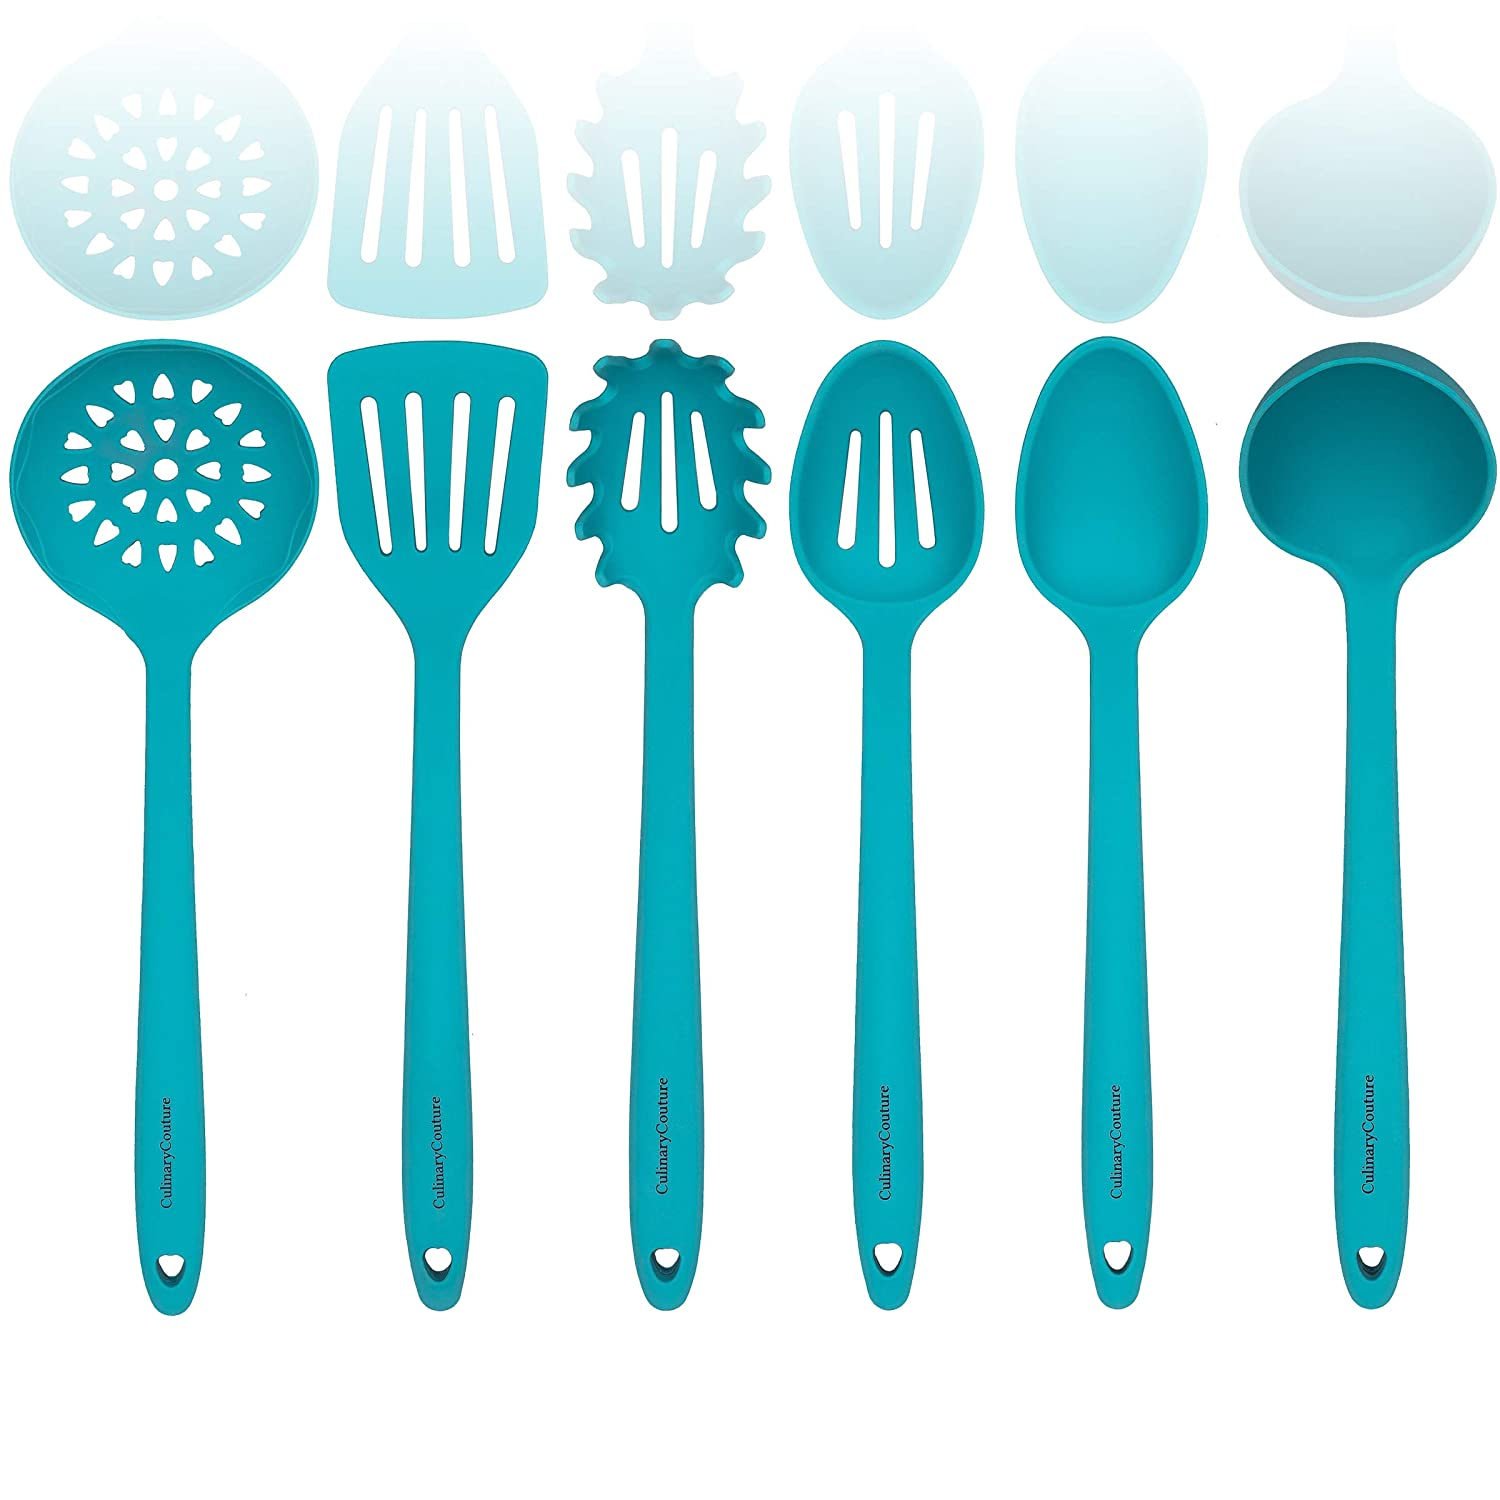 Aqua Sky Silicone Cooking Utensils Set – Sturdy Steel Inner Core – Spatula, Mixing & Slotted Spoon, Ladle, Pasta Server, Drainer – Heat Resistant Kitchen Tools - Bonus Recipe Ebook